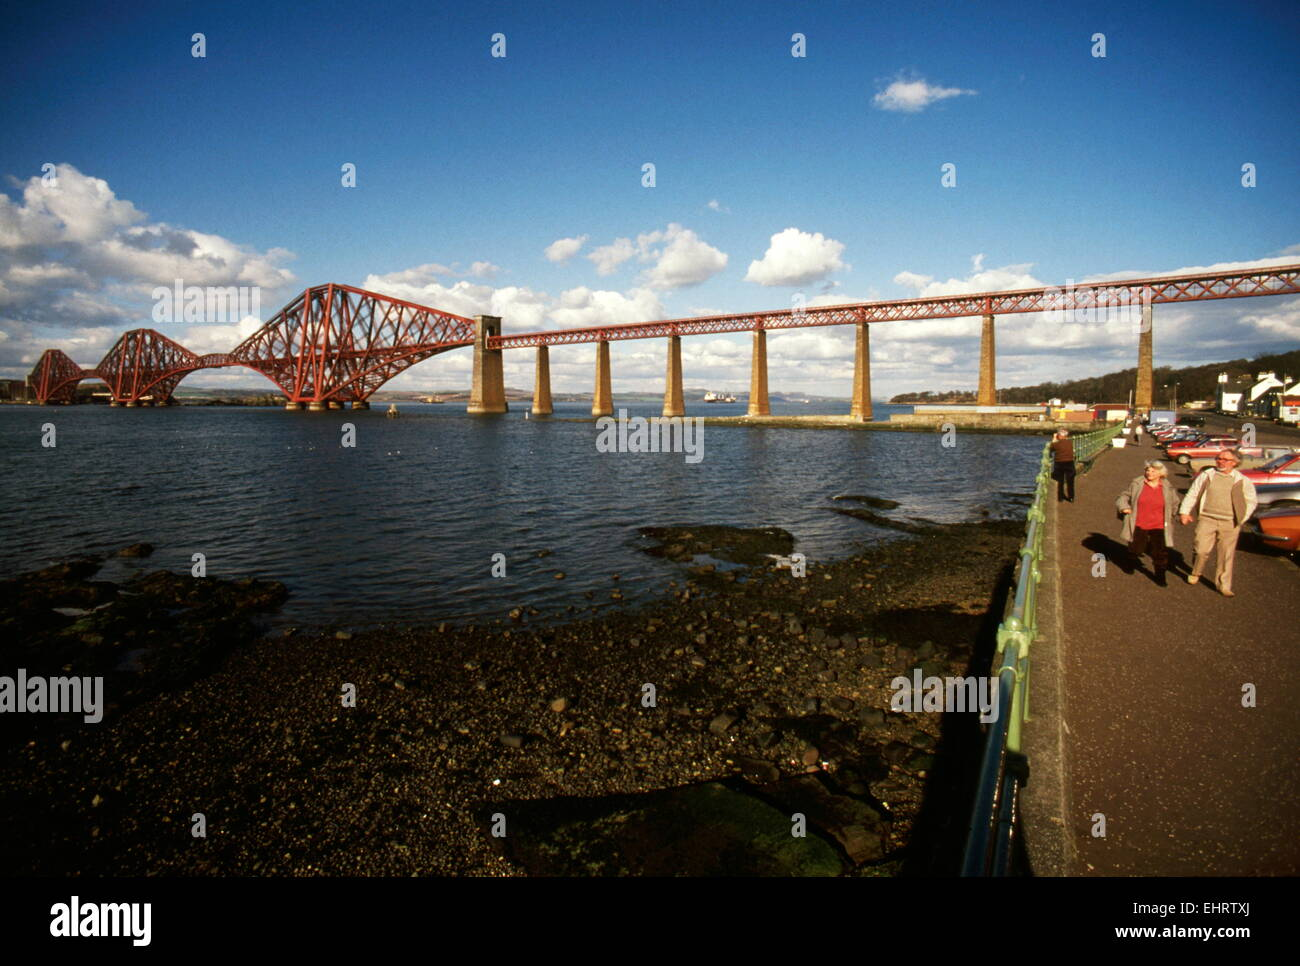 AJAXNETPHOTO. - 1988. FIRTH OF FORTH, SCOTLAND. - ESTUARY CROSSING - THE CANTILEVER FORTH RAIL BRIDGE SEEN FROM - Stock Image